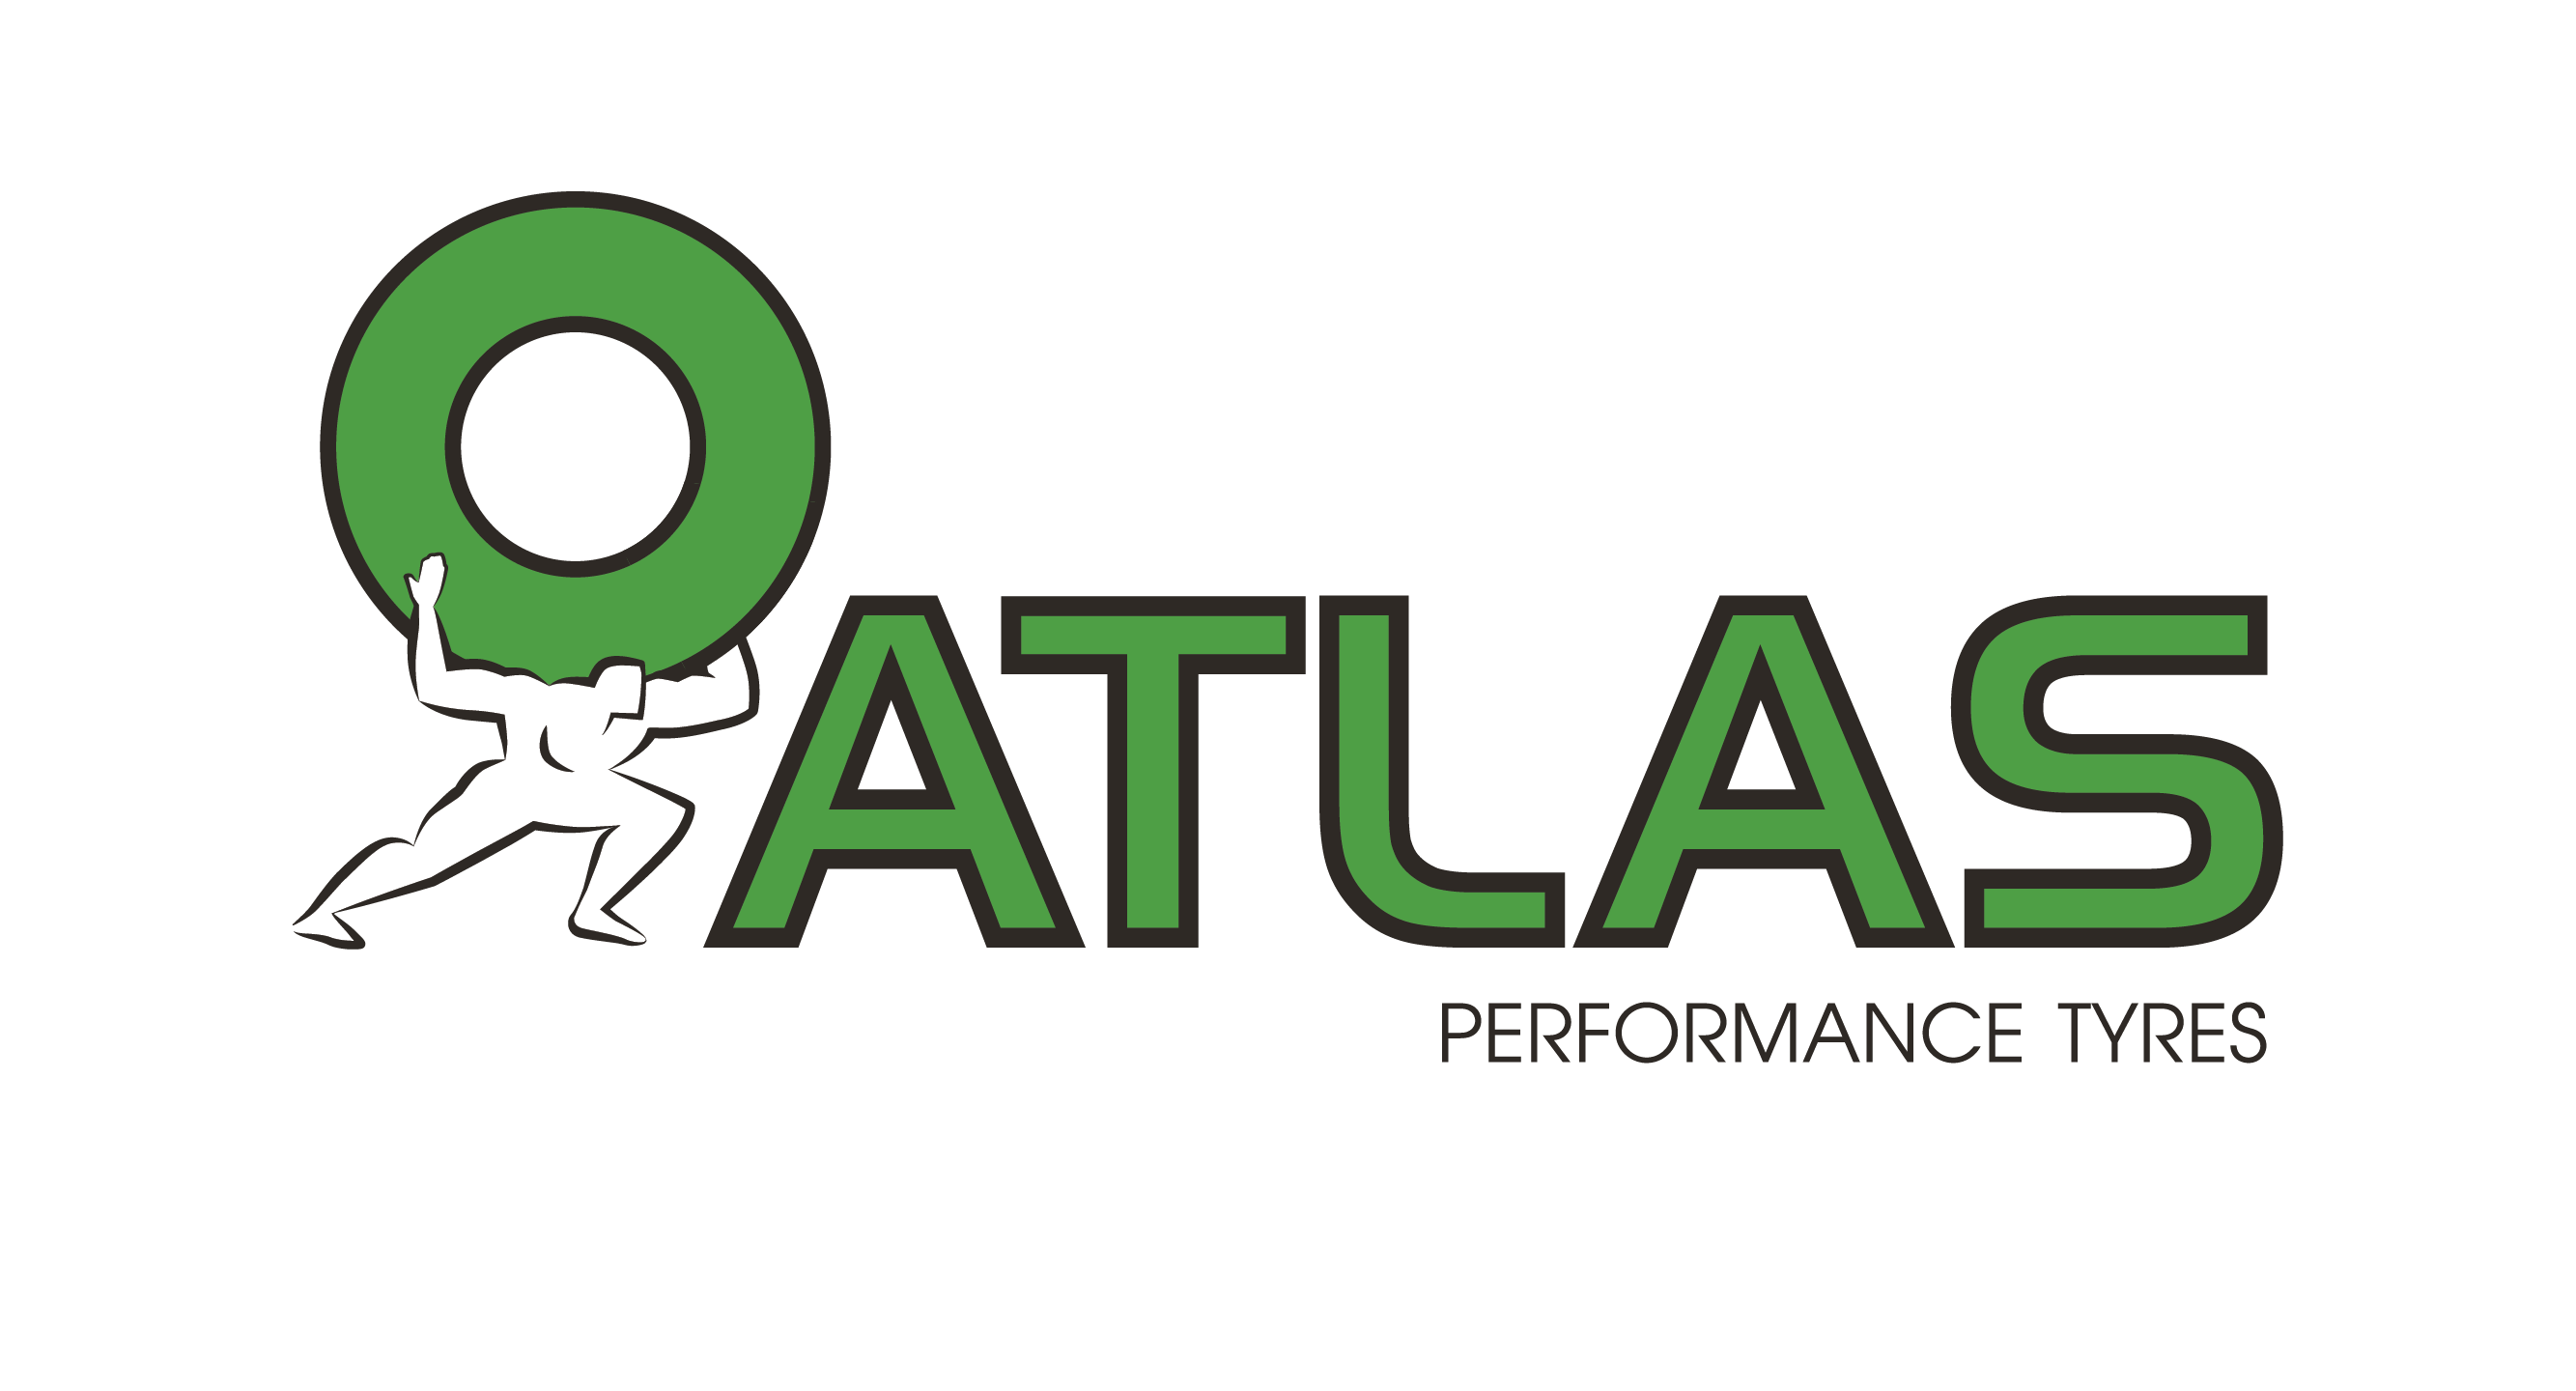 Atlas logo all 03 PMS e1481115850164 - Home 2